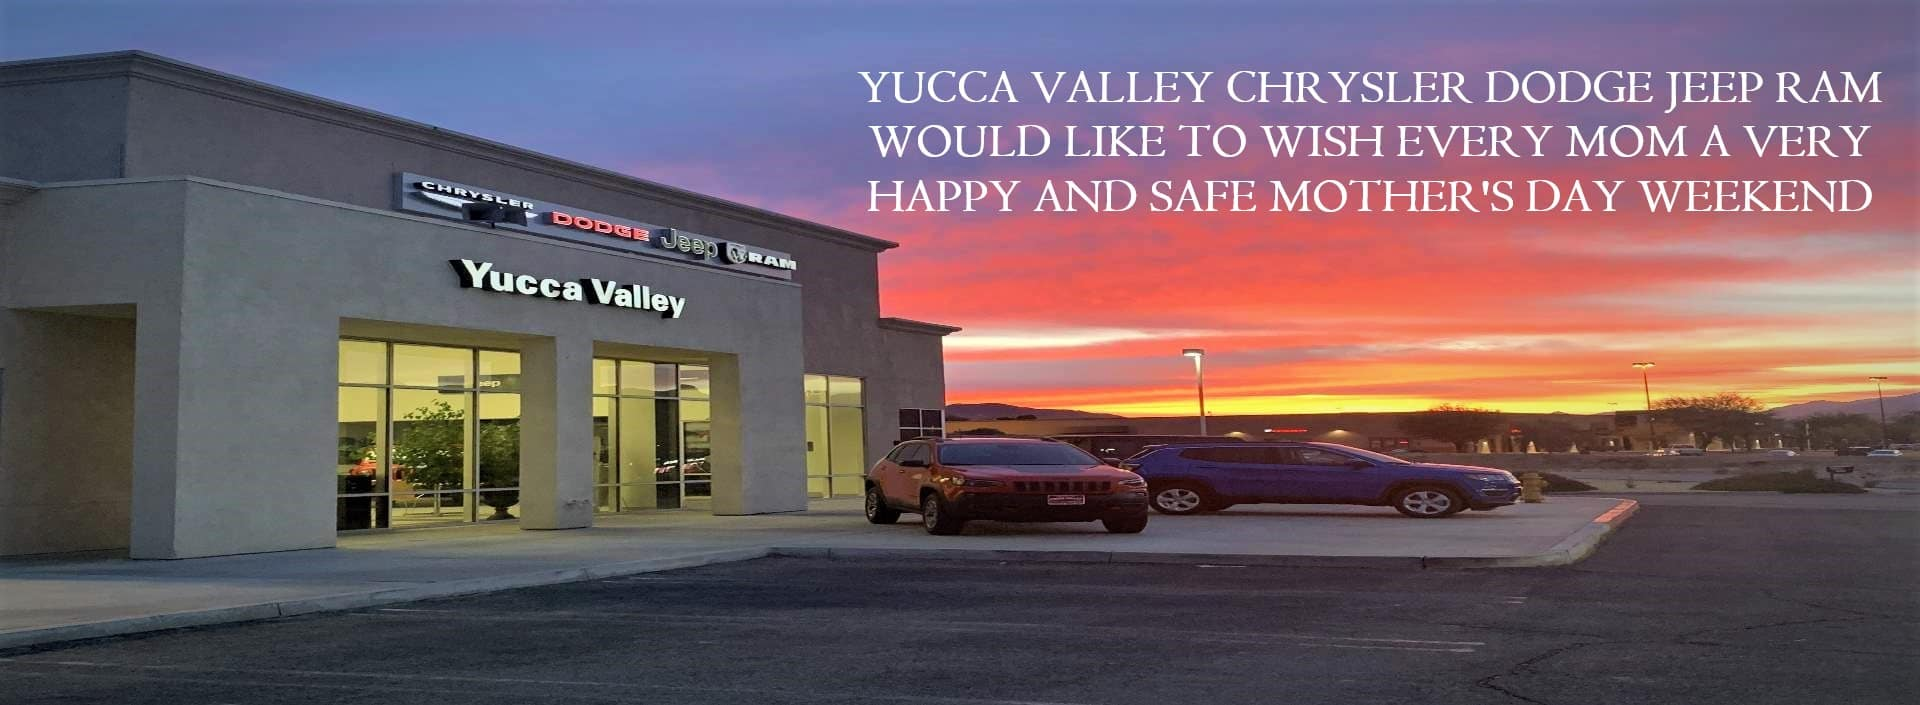 MOHERS DAY YUCCA VALLEY CHRYSLER DODGE JEEP RAM